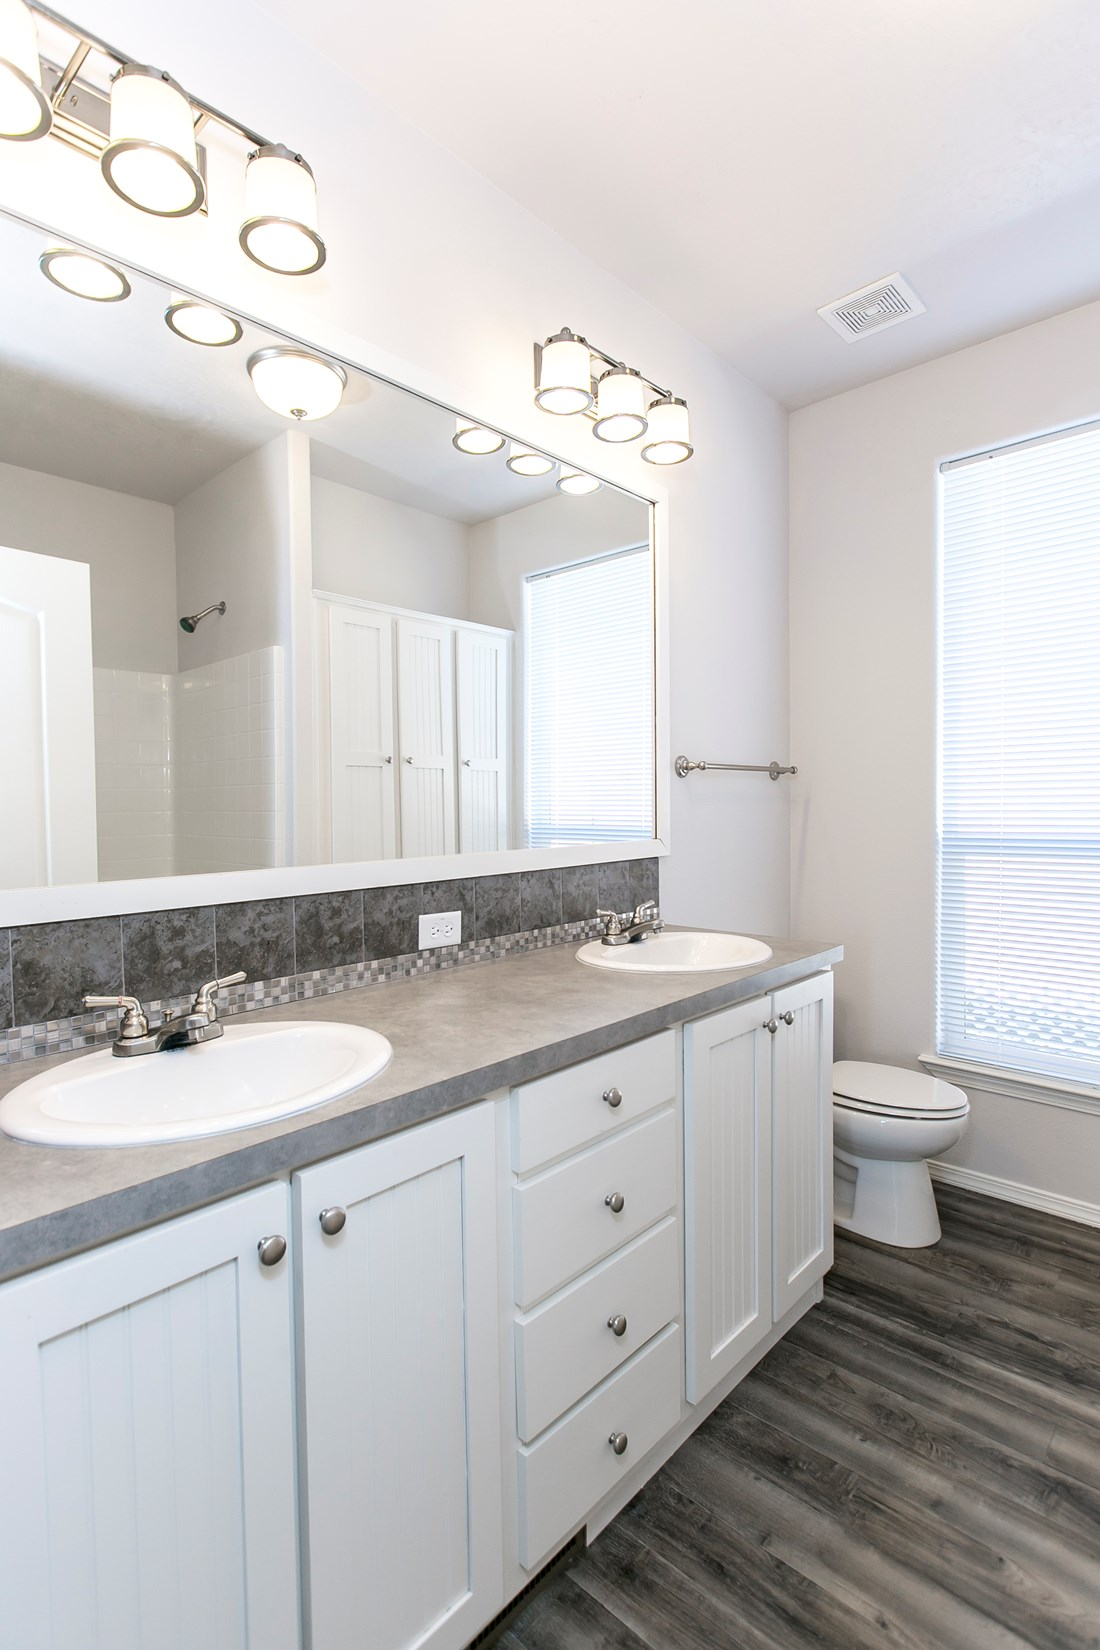 The ING681F EUCALYPTUS   (FULL) GW Guest Bathroom. This Manufactured Mobile Home features 3 bedrooms and 2 baths.